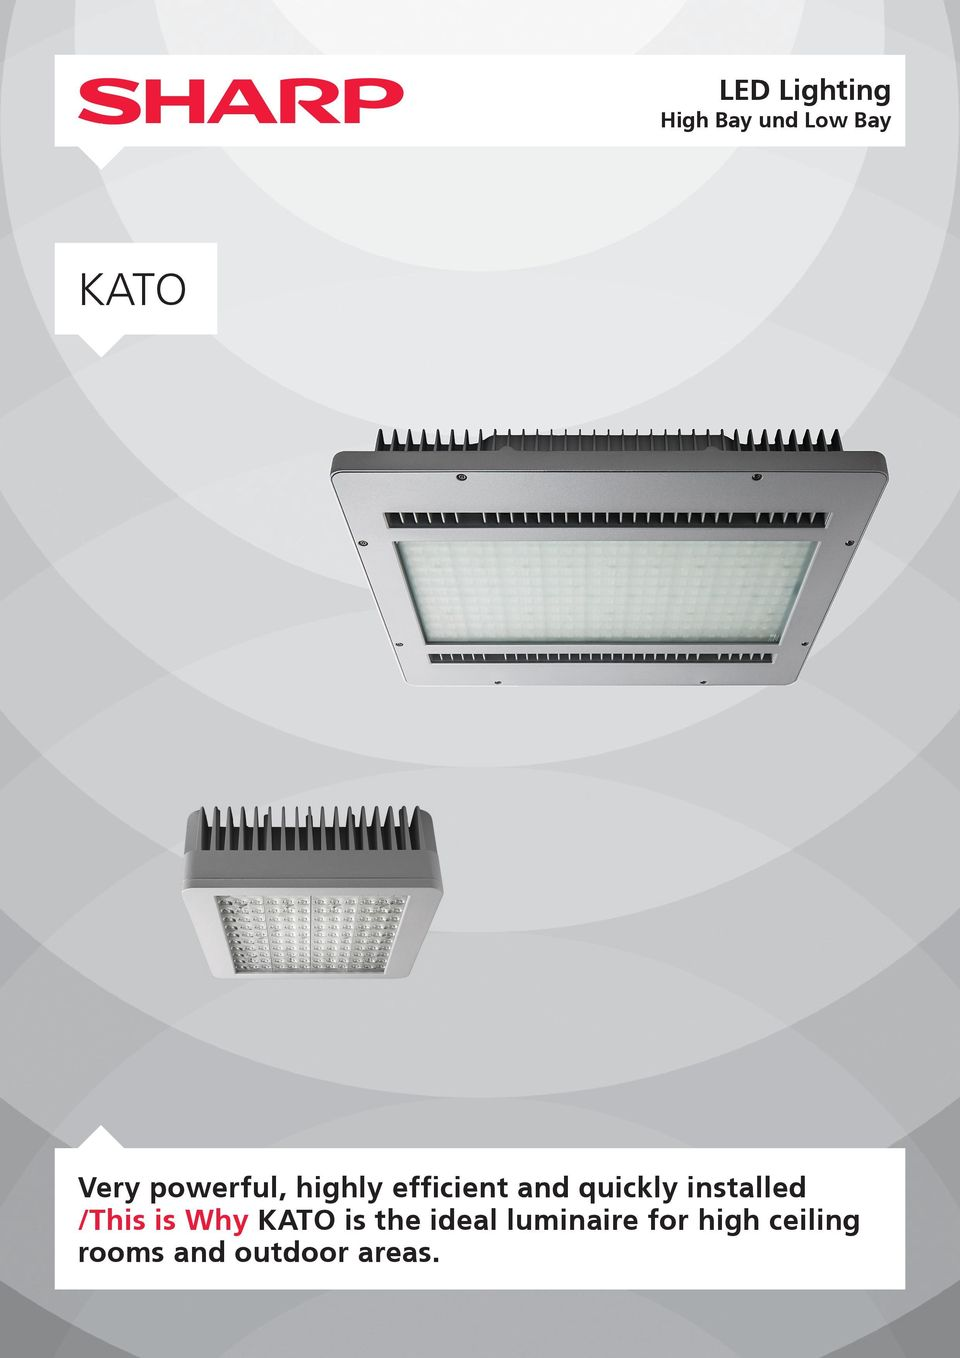 installed /This is Why KATO is the ideal